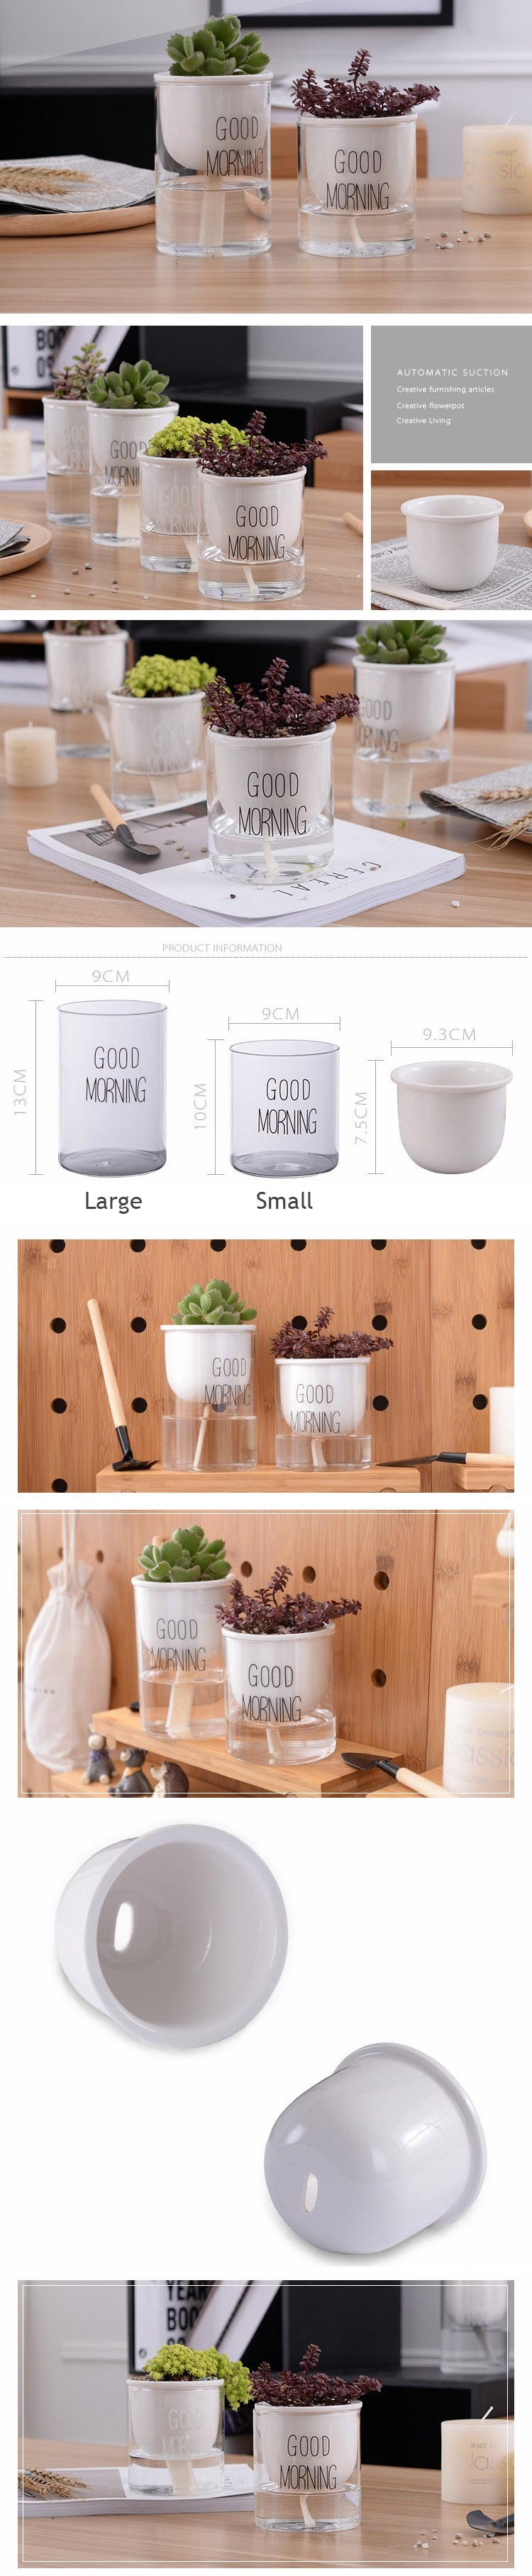 Automatic Watering Plant Pot - Bean Concept - Etsy